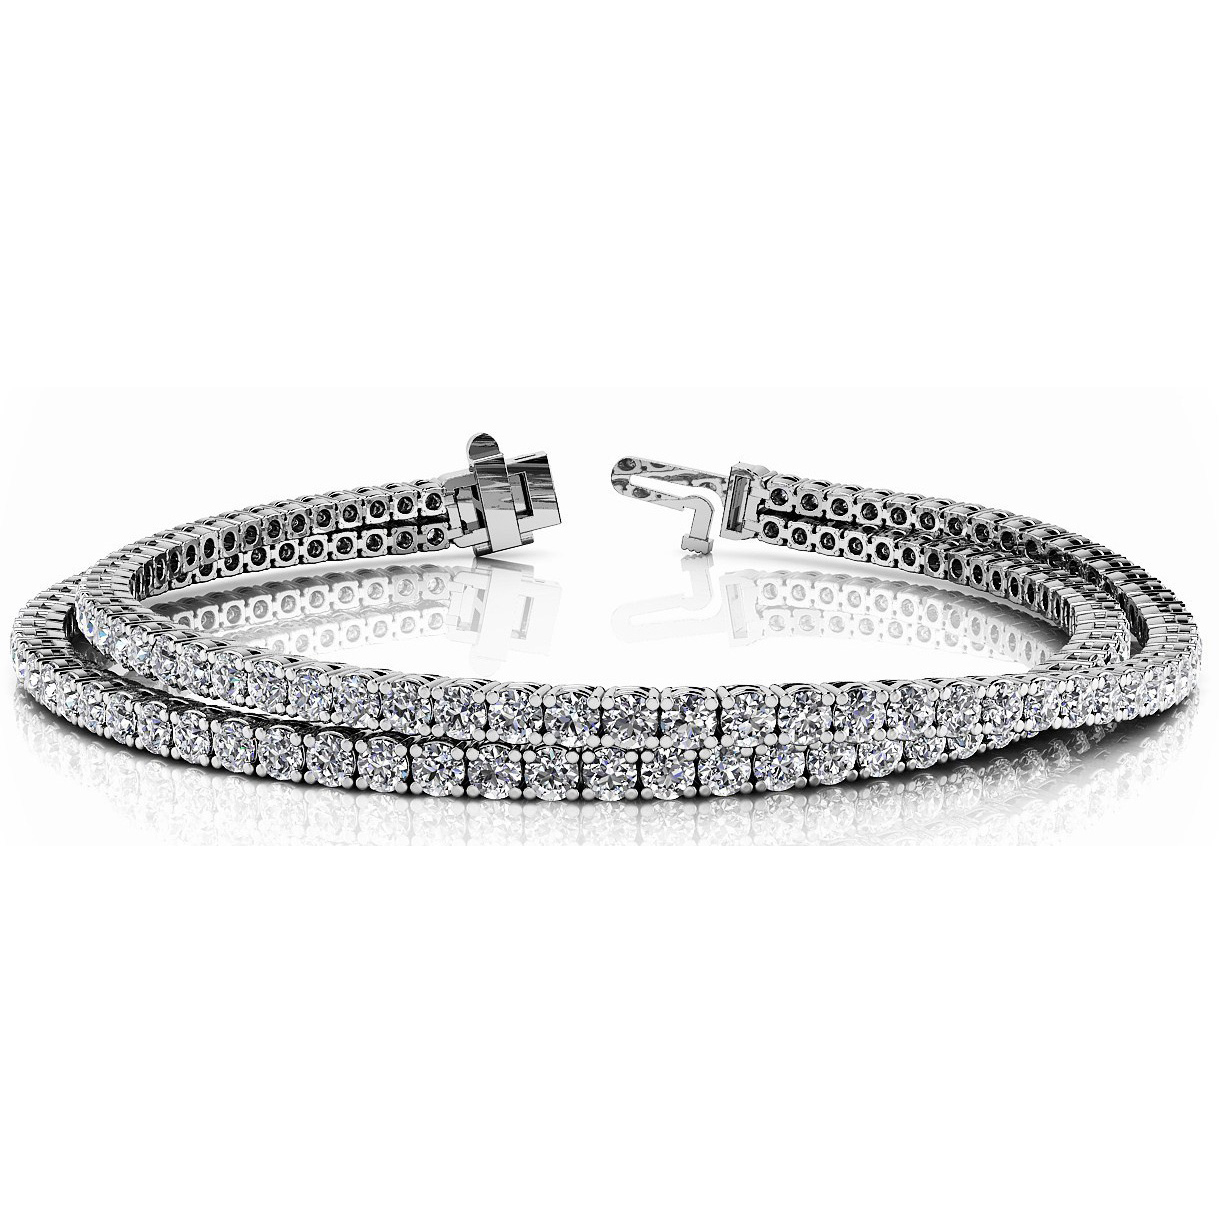 Diamond bracelet 5.00 Carat Diamonds 14K or 18K Gold